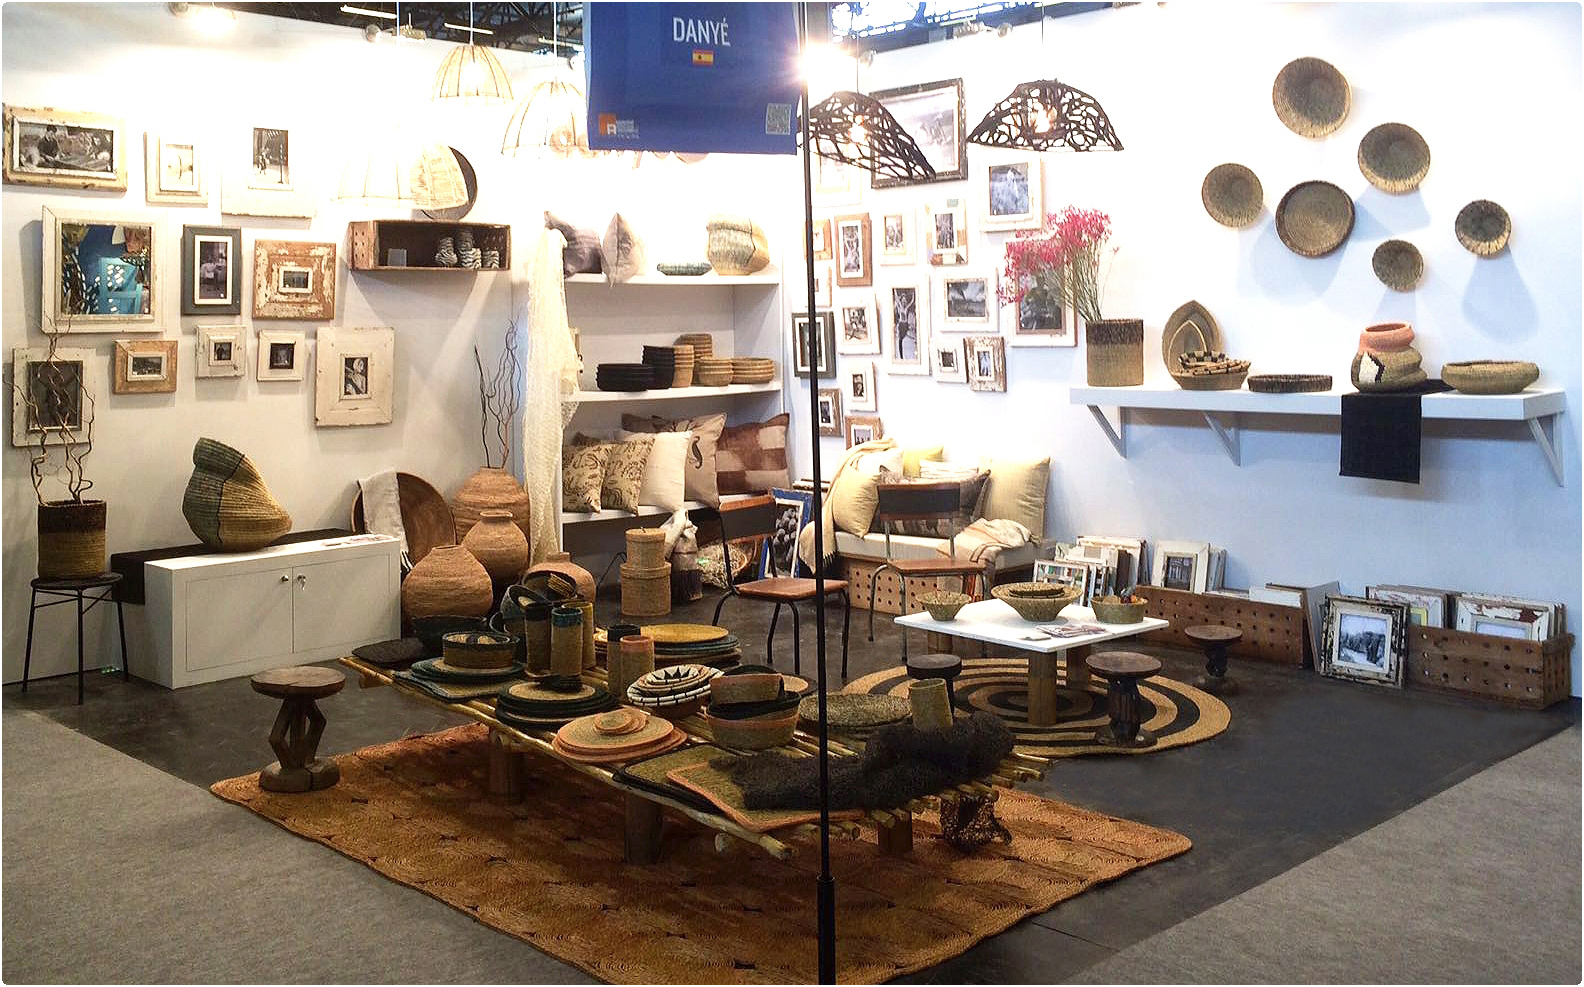 We are back from Maison&Objet, in Paris